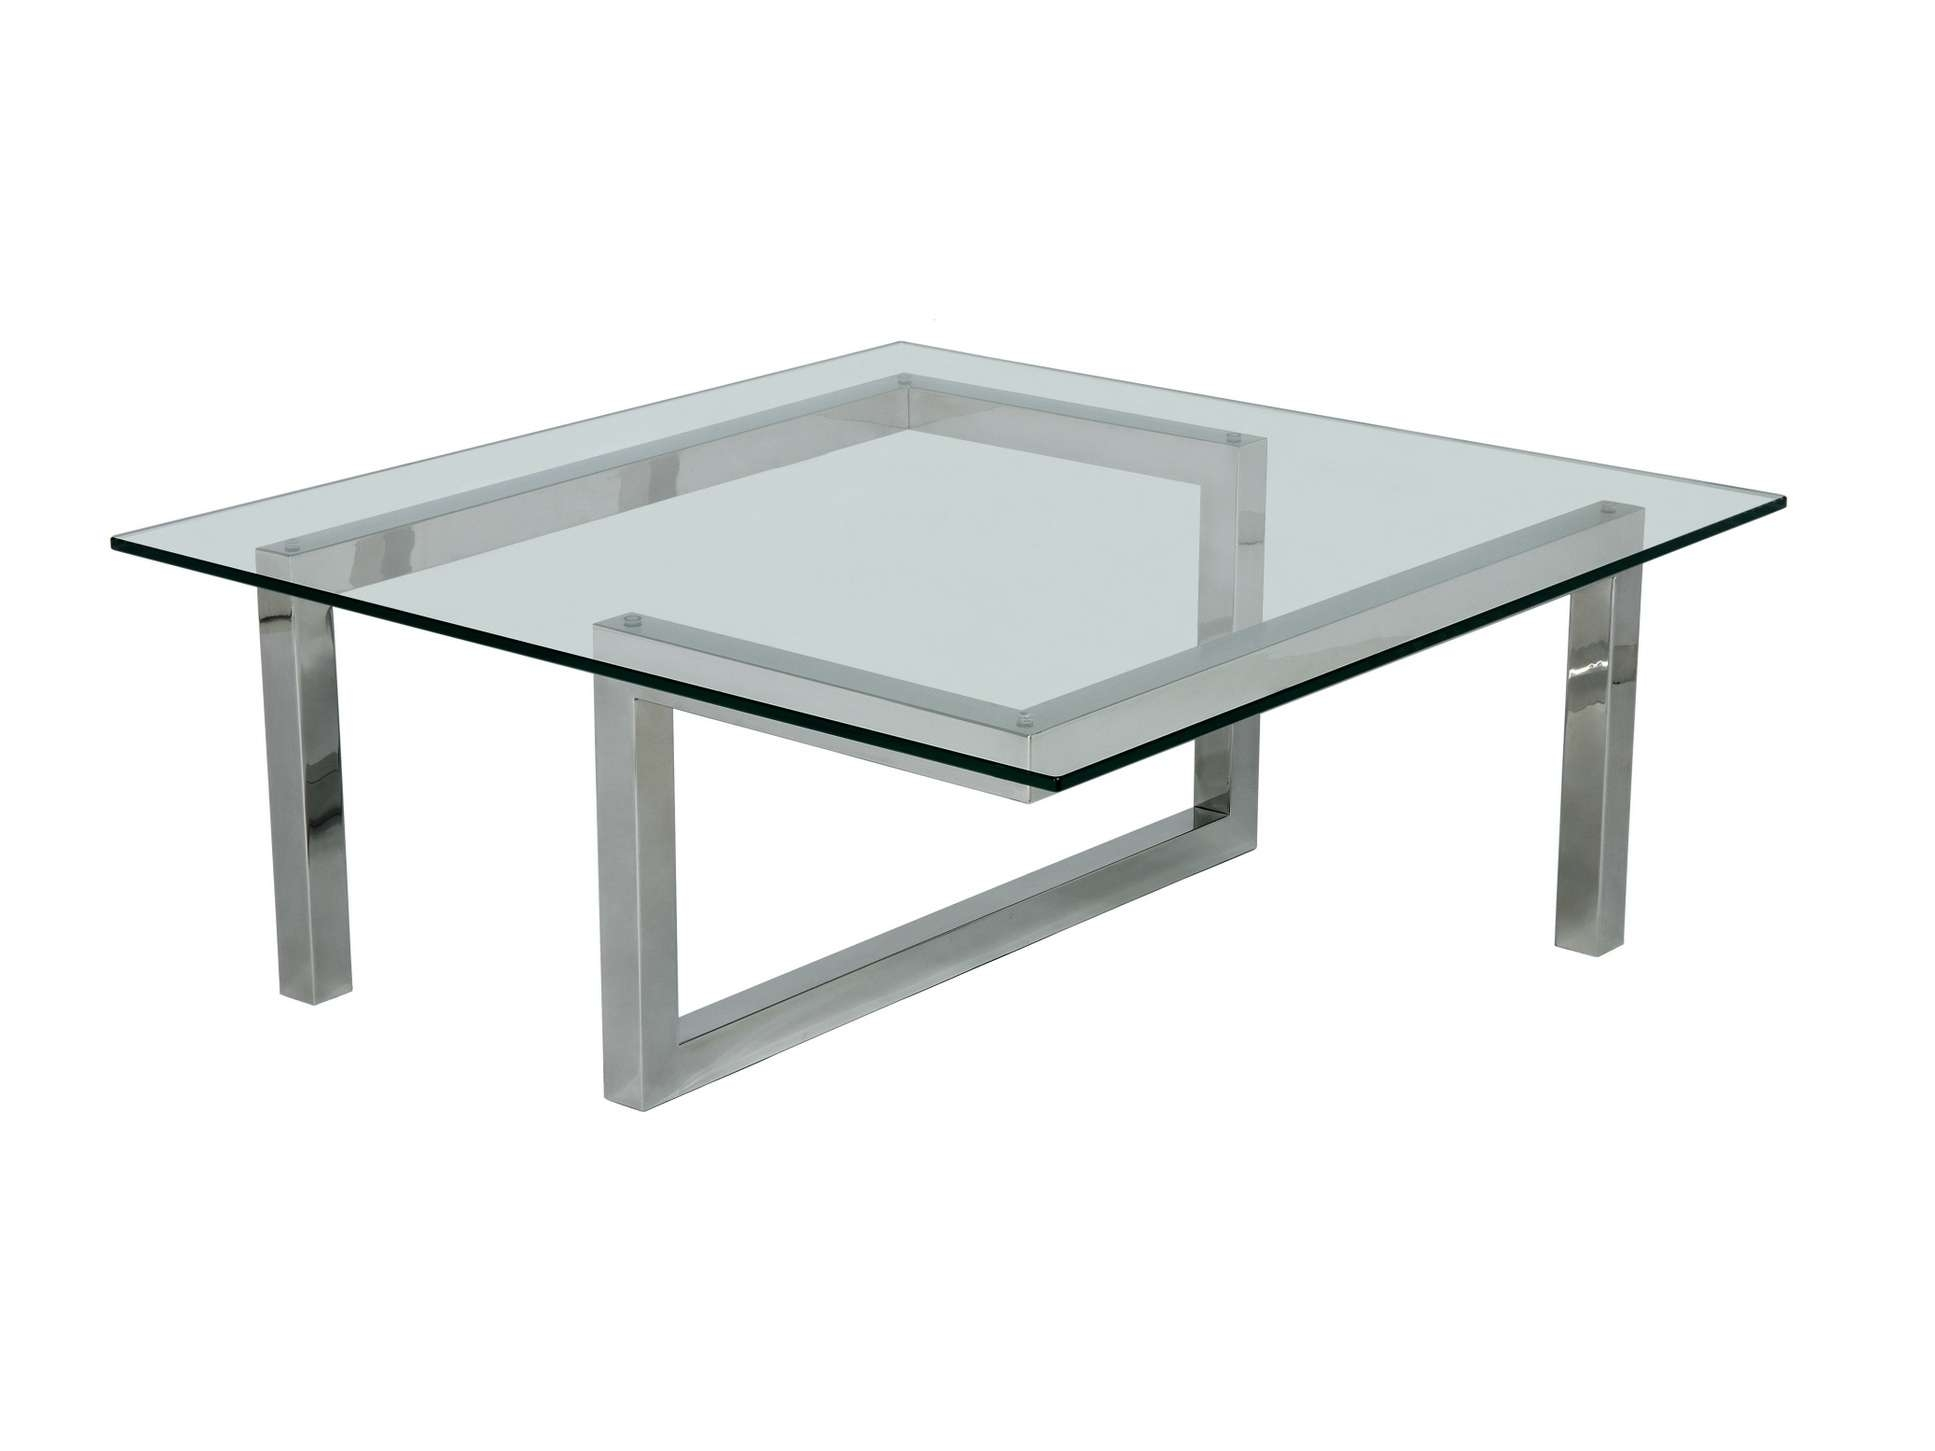 Widely Used Modern Glass Coffee Tables Within Coffee Tables : Horn Modern Glass Coffee Tables Nella Vetrina (View 20 of 20)